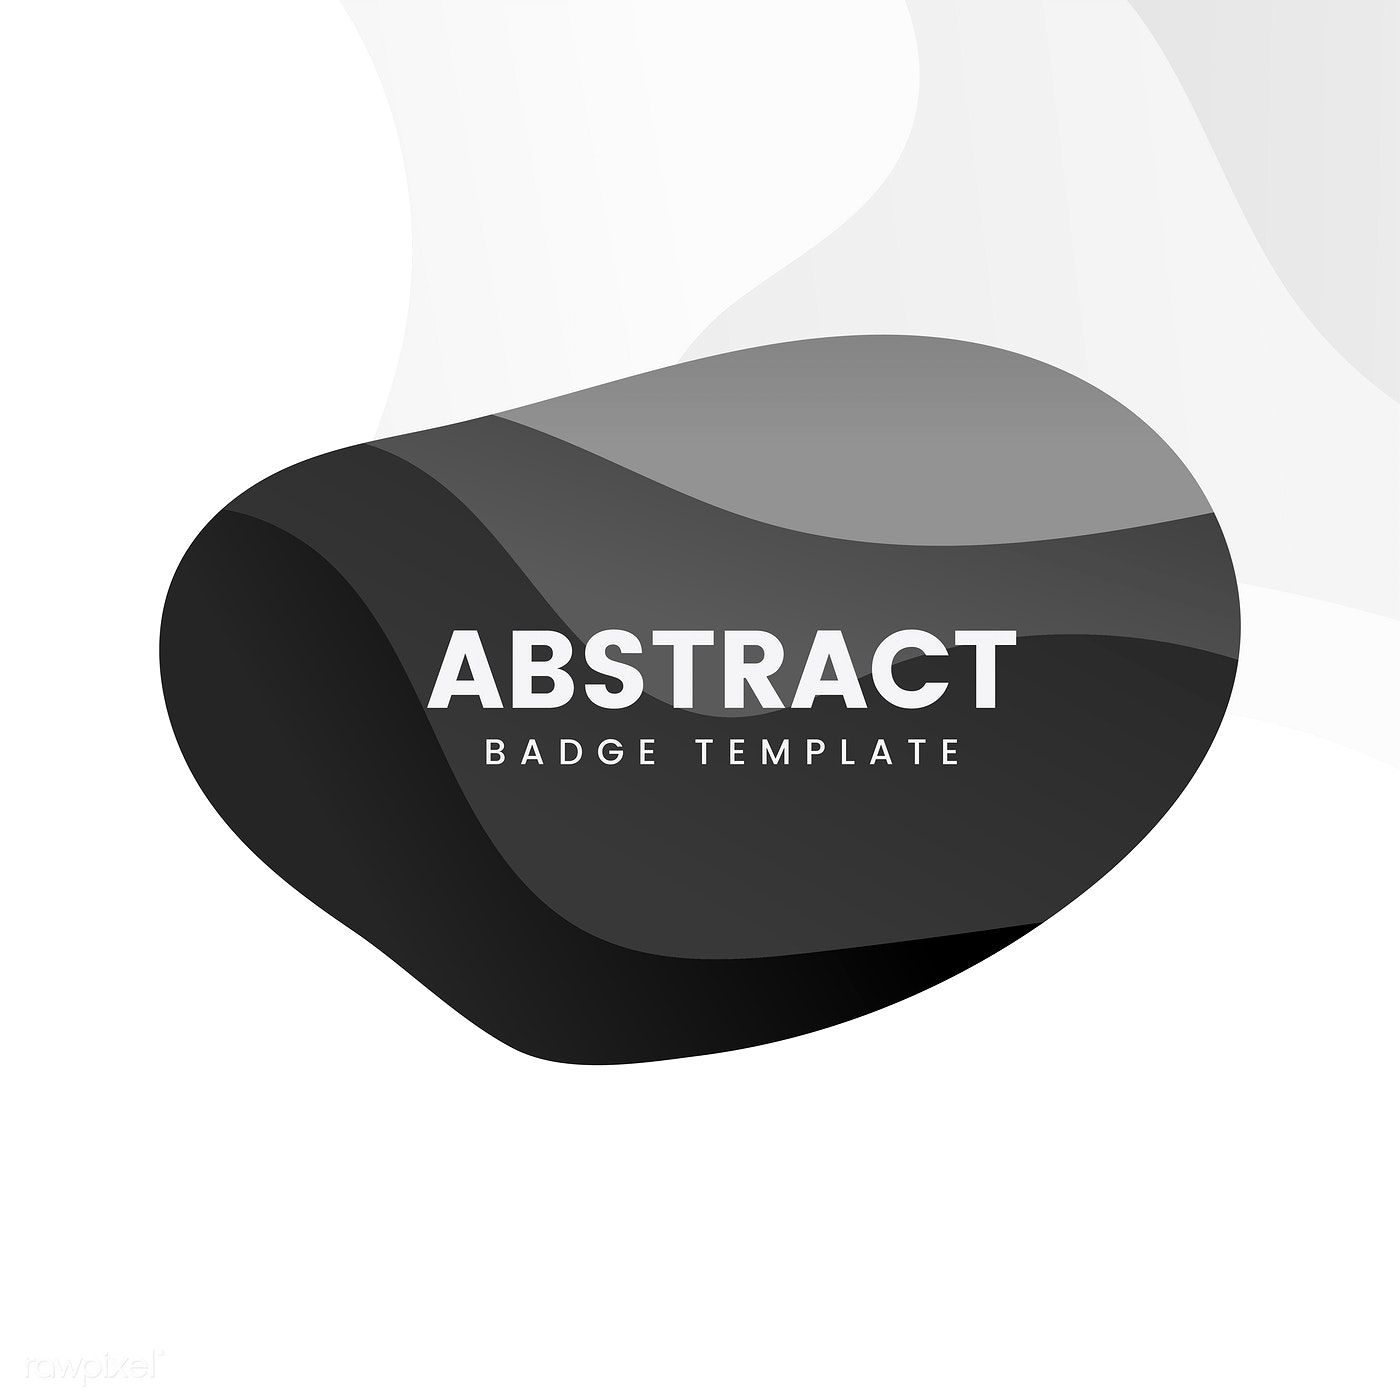 Abstract Badge Template In Black